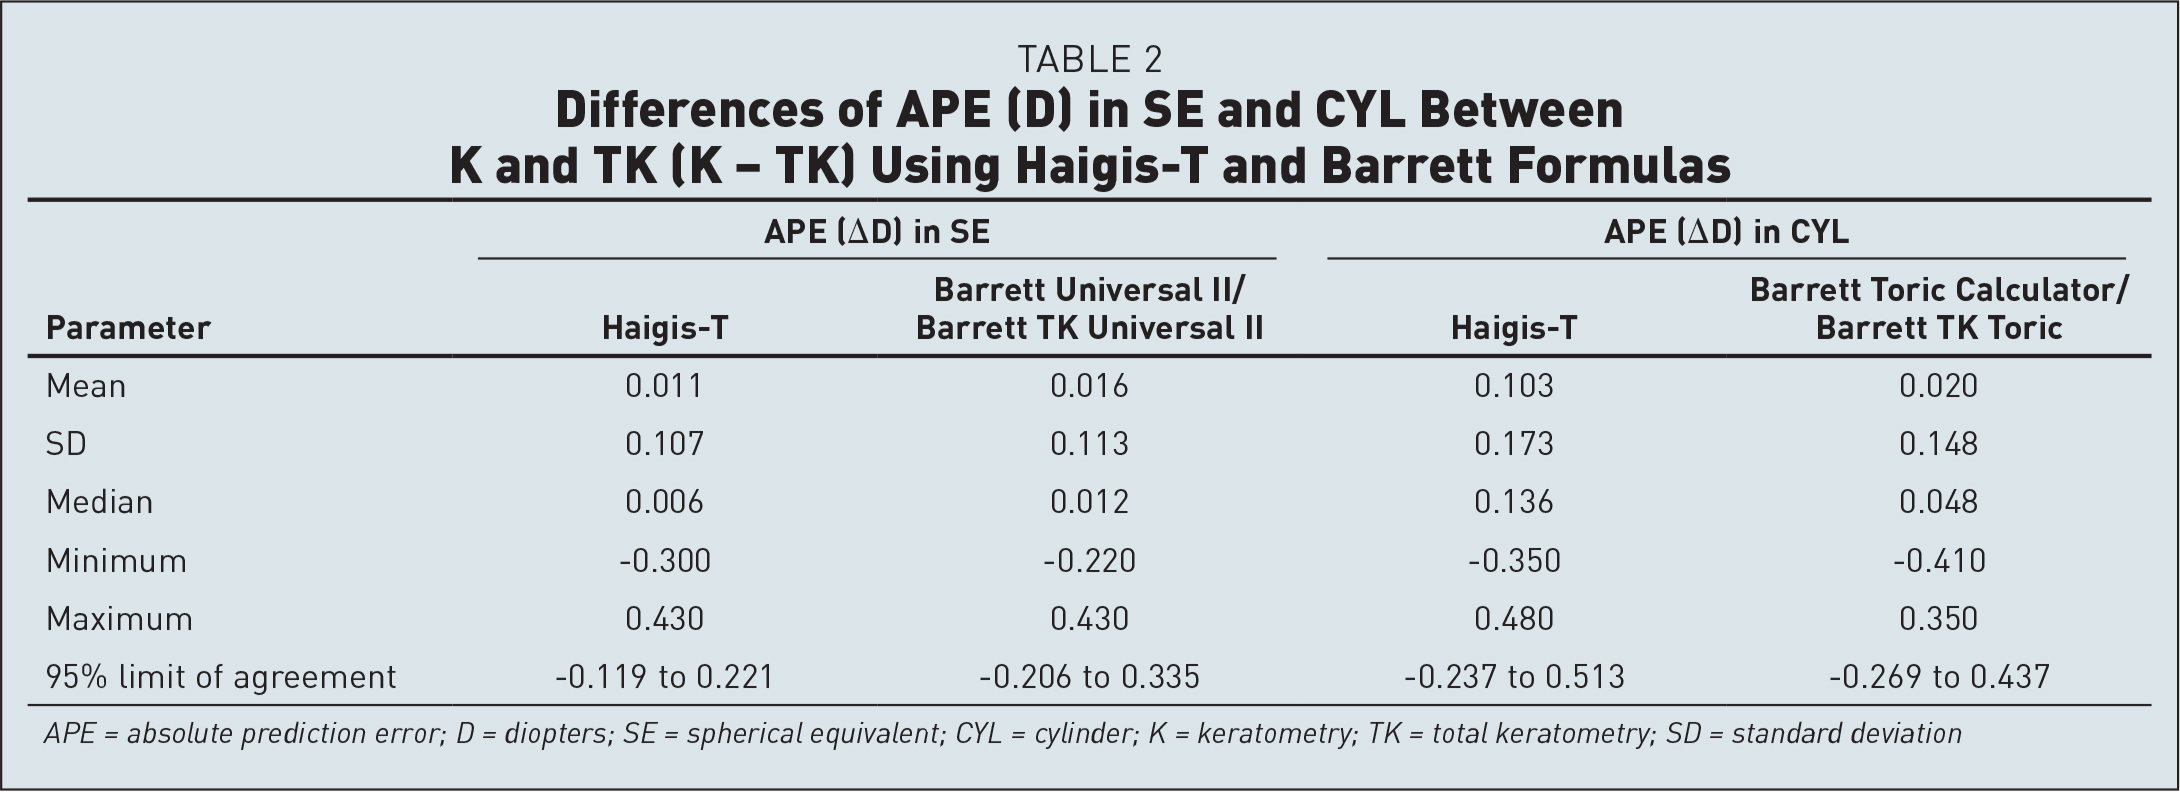 Differences of APE (D) in SE and CYL Between K and TK (K − TK) Using Haigis-T and Barrett Formulas